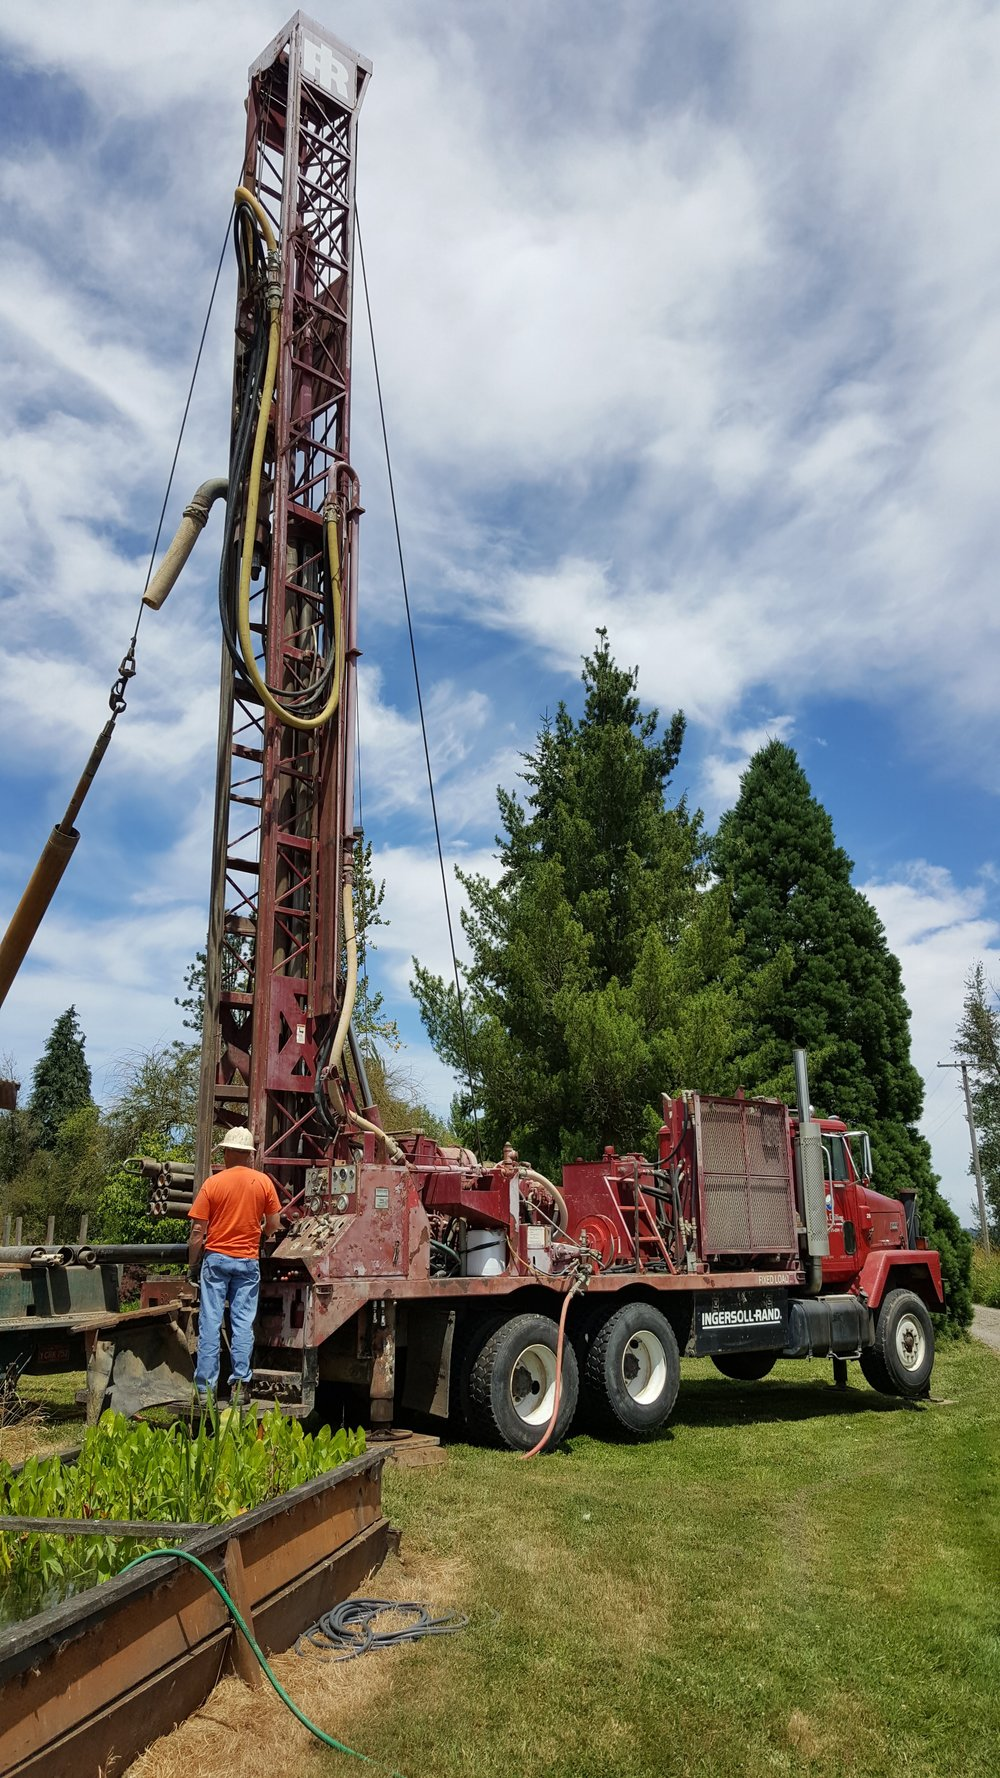 2016, installing new well.